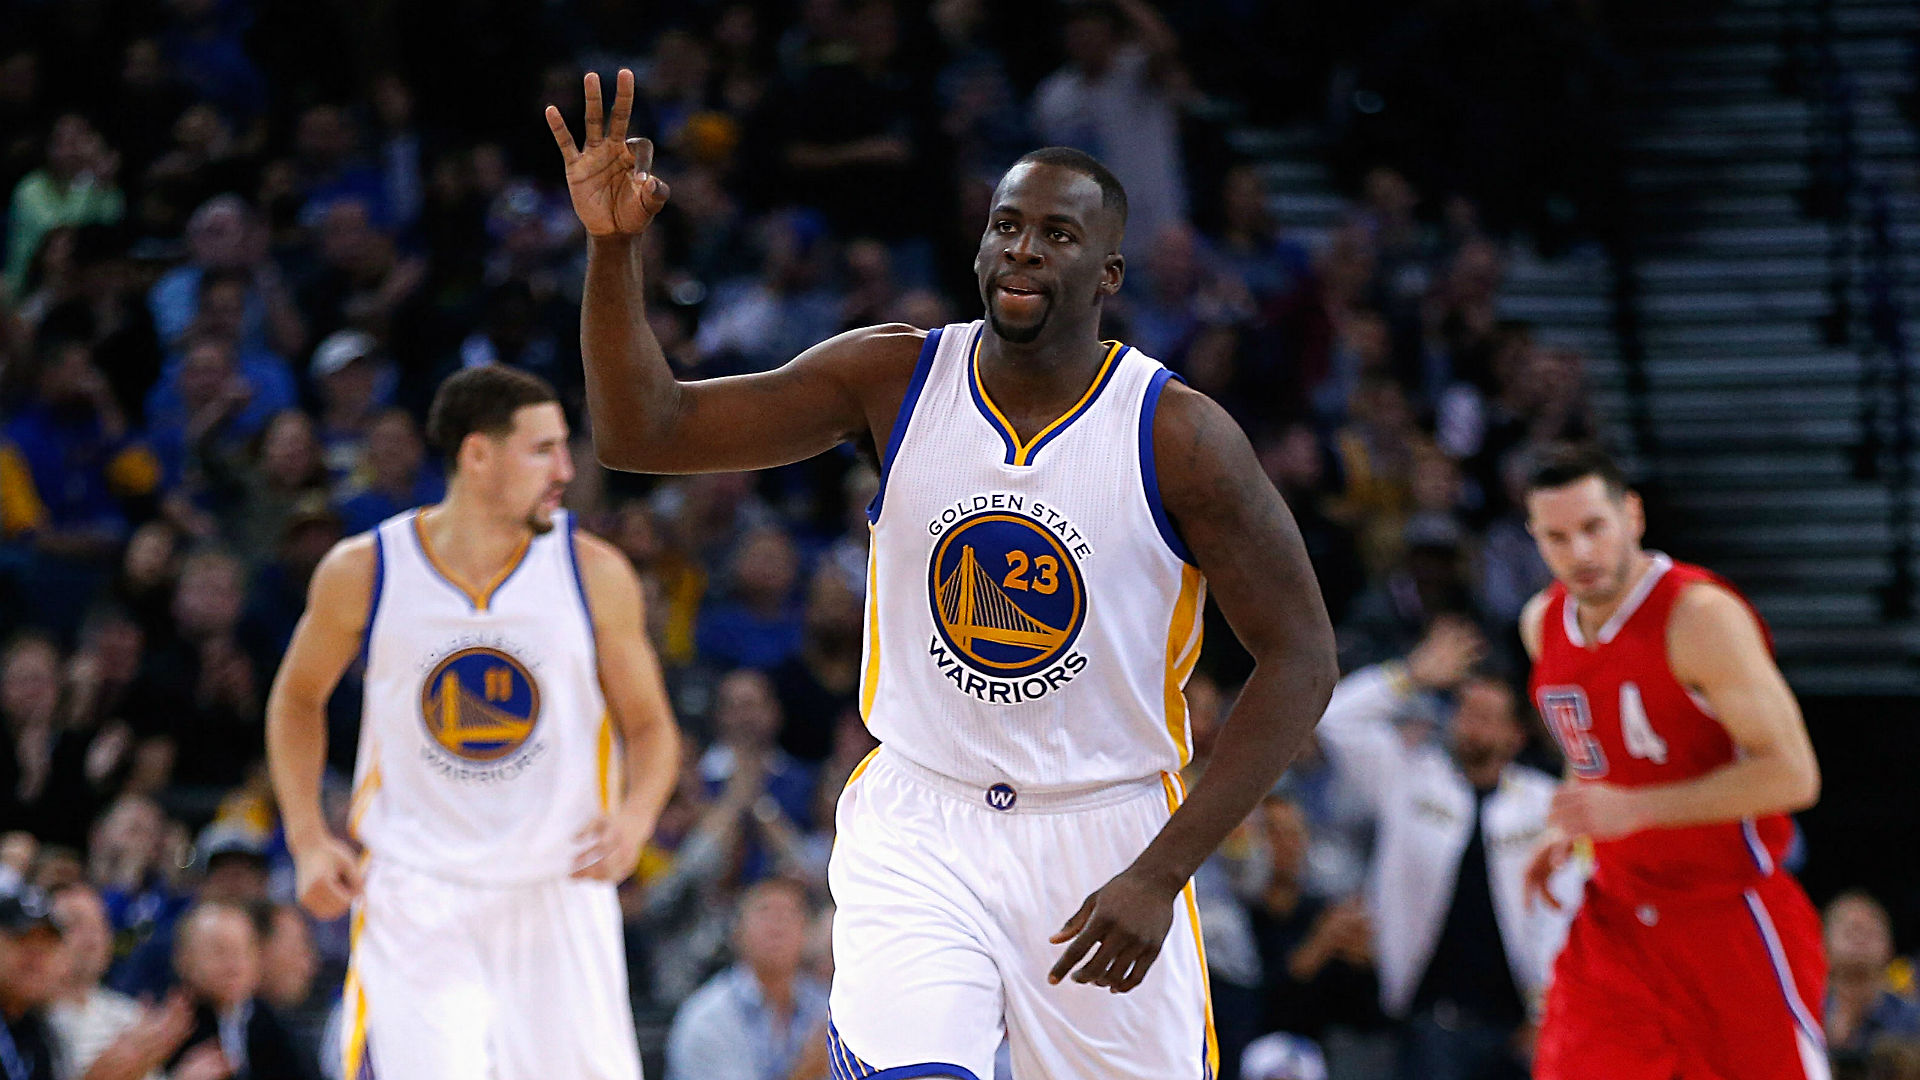 NBA betting lines and picks - Warriors lay big number at Clippers; Cavs on big ATS skid